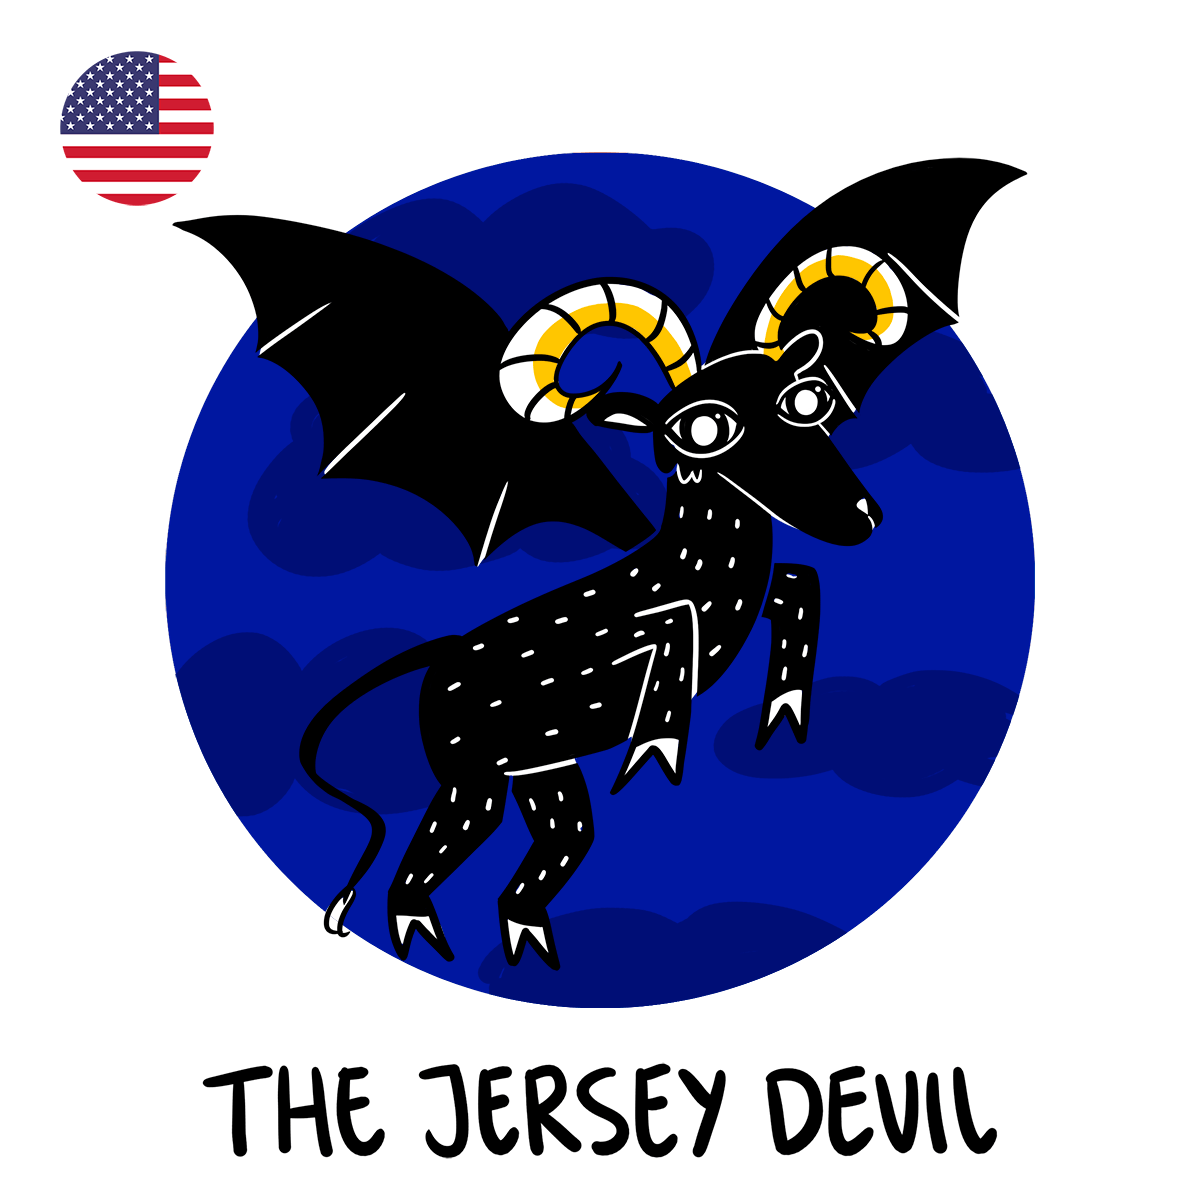 Jersey Devil illustration of goat with bat wings